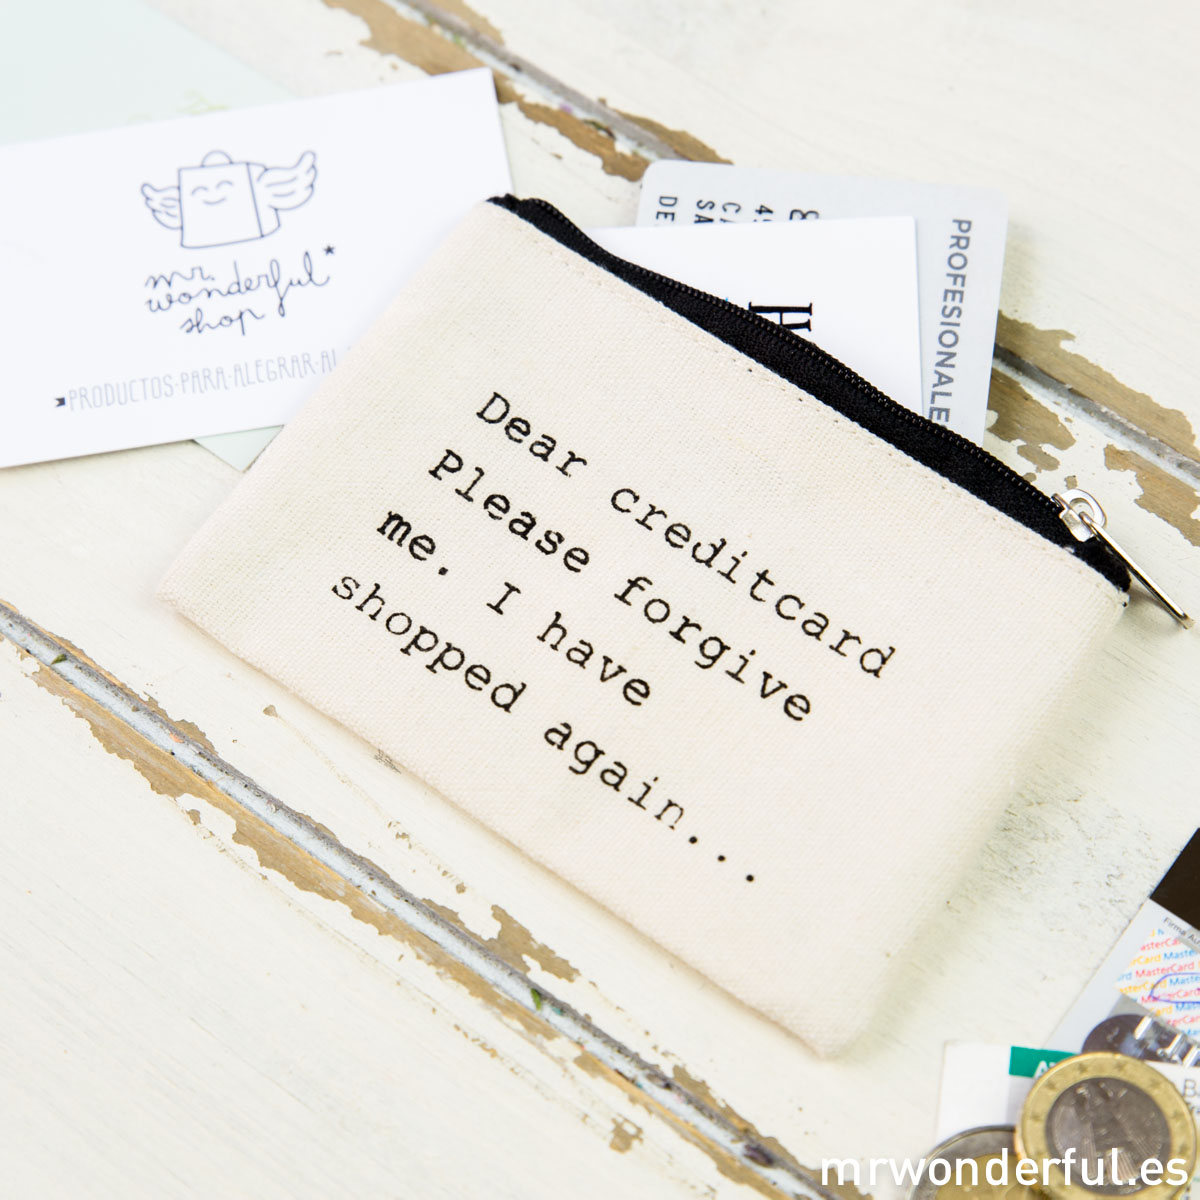 mrwonderful_LS0385_2_monedero-tela-cremallera_dear-credit-card-2